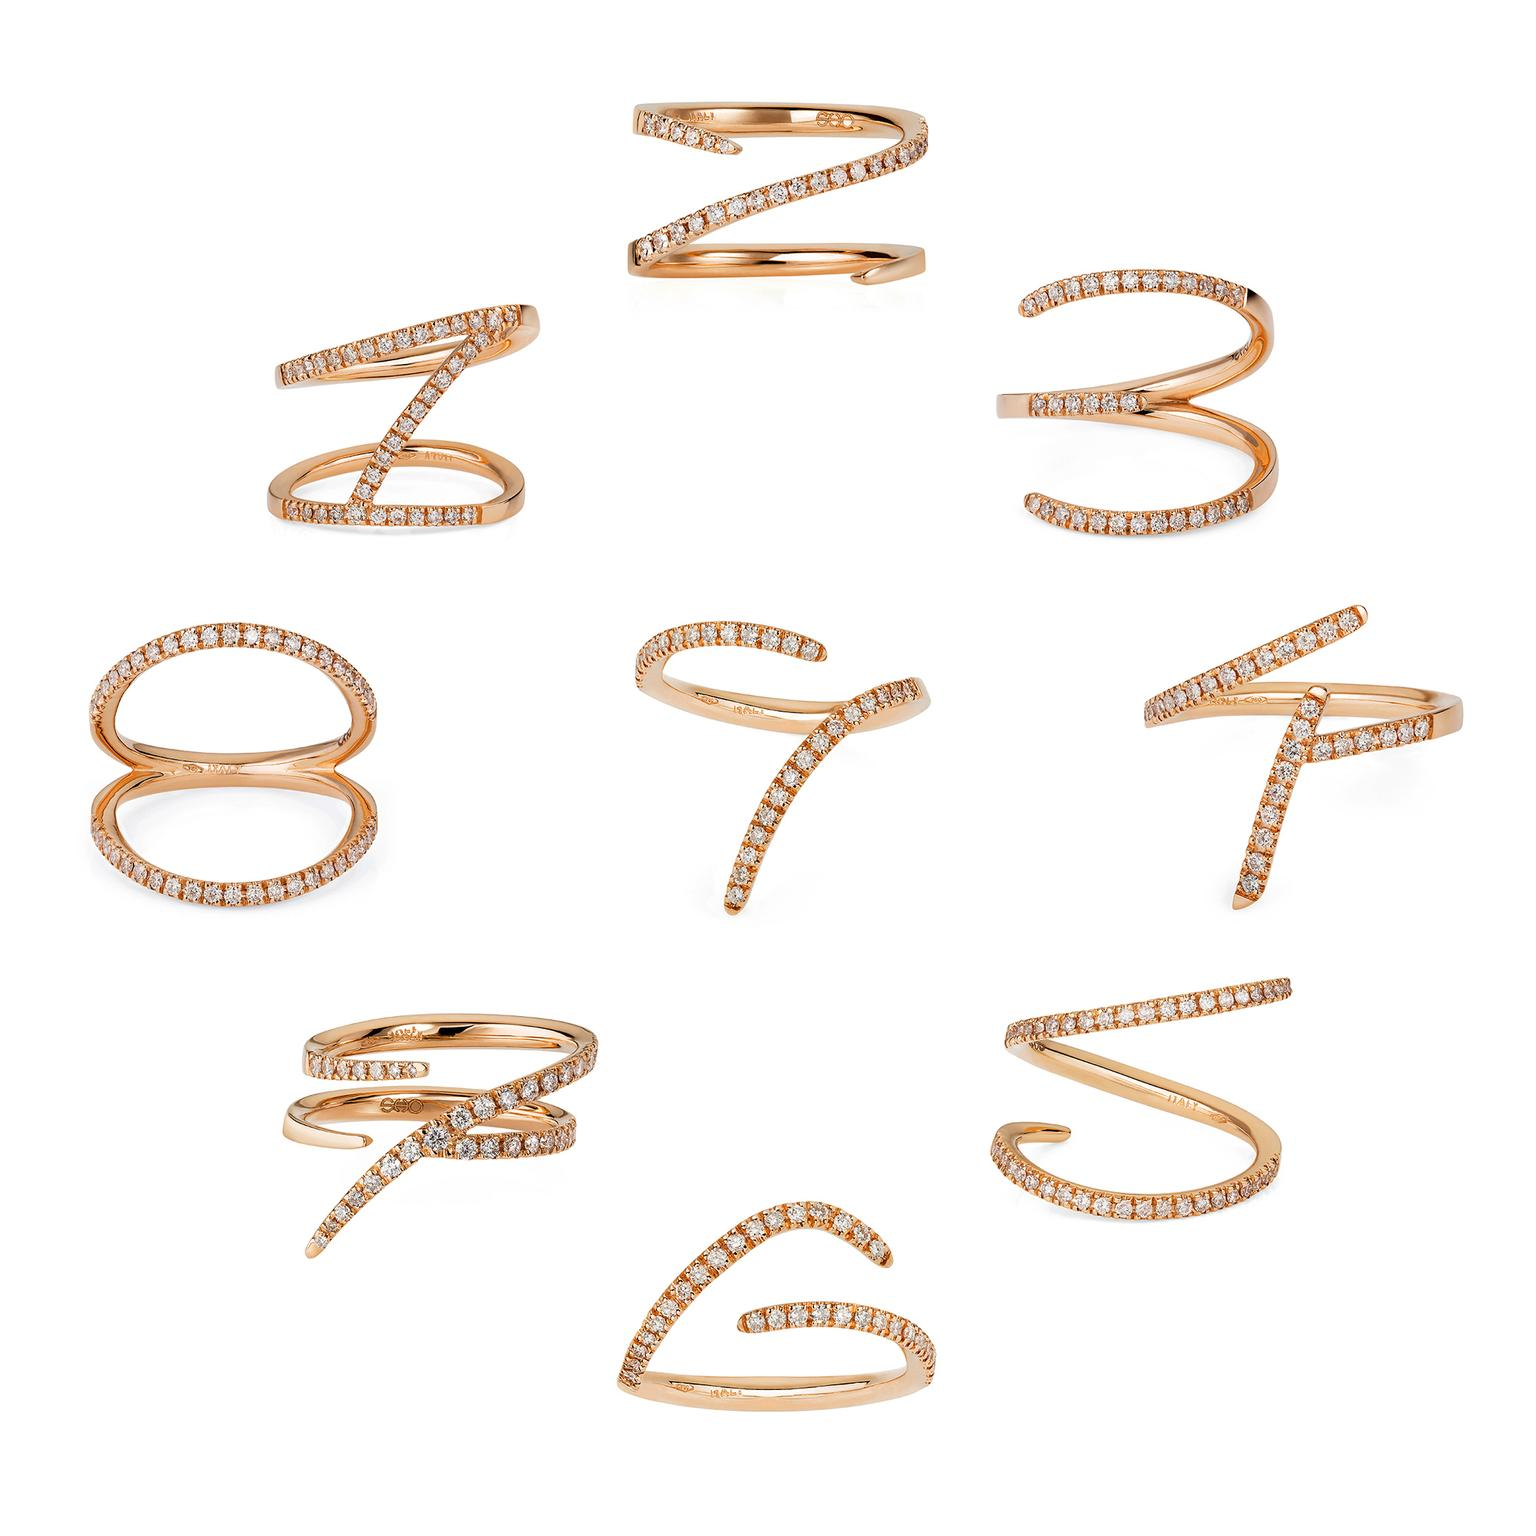 Sarah Ho rose gold and diamond Numerati rings